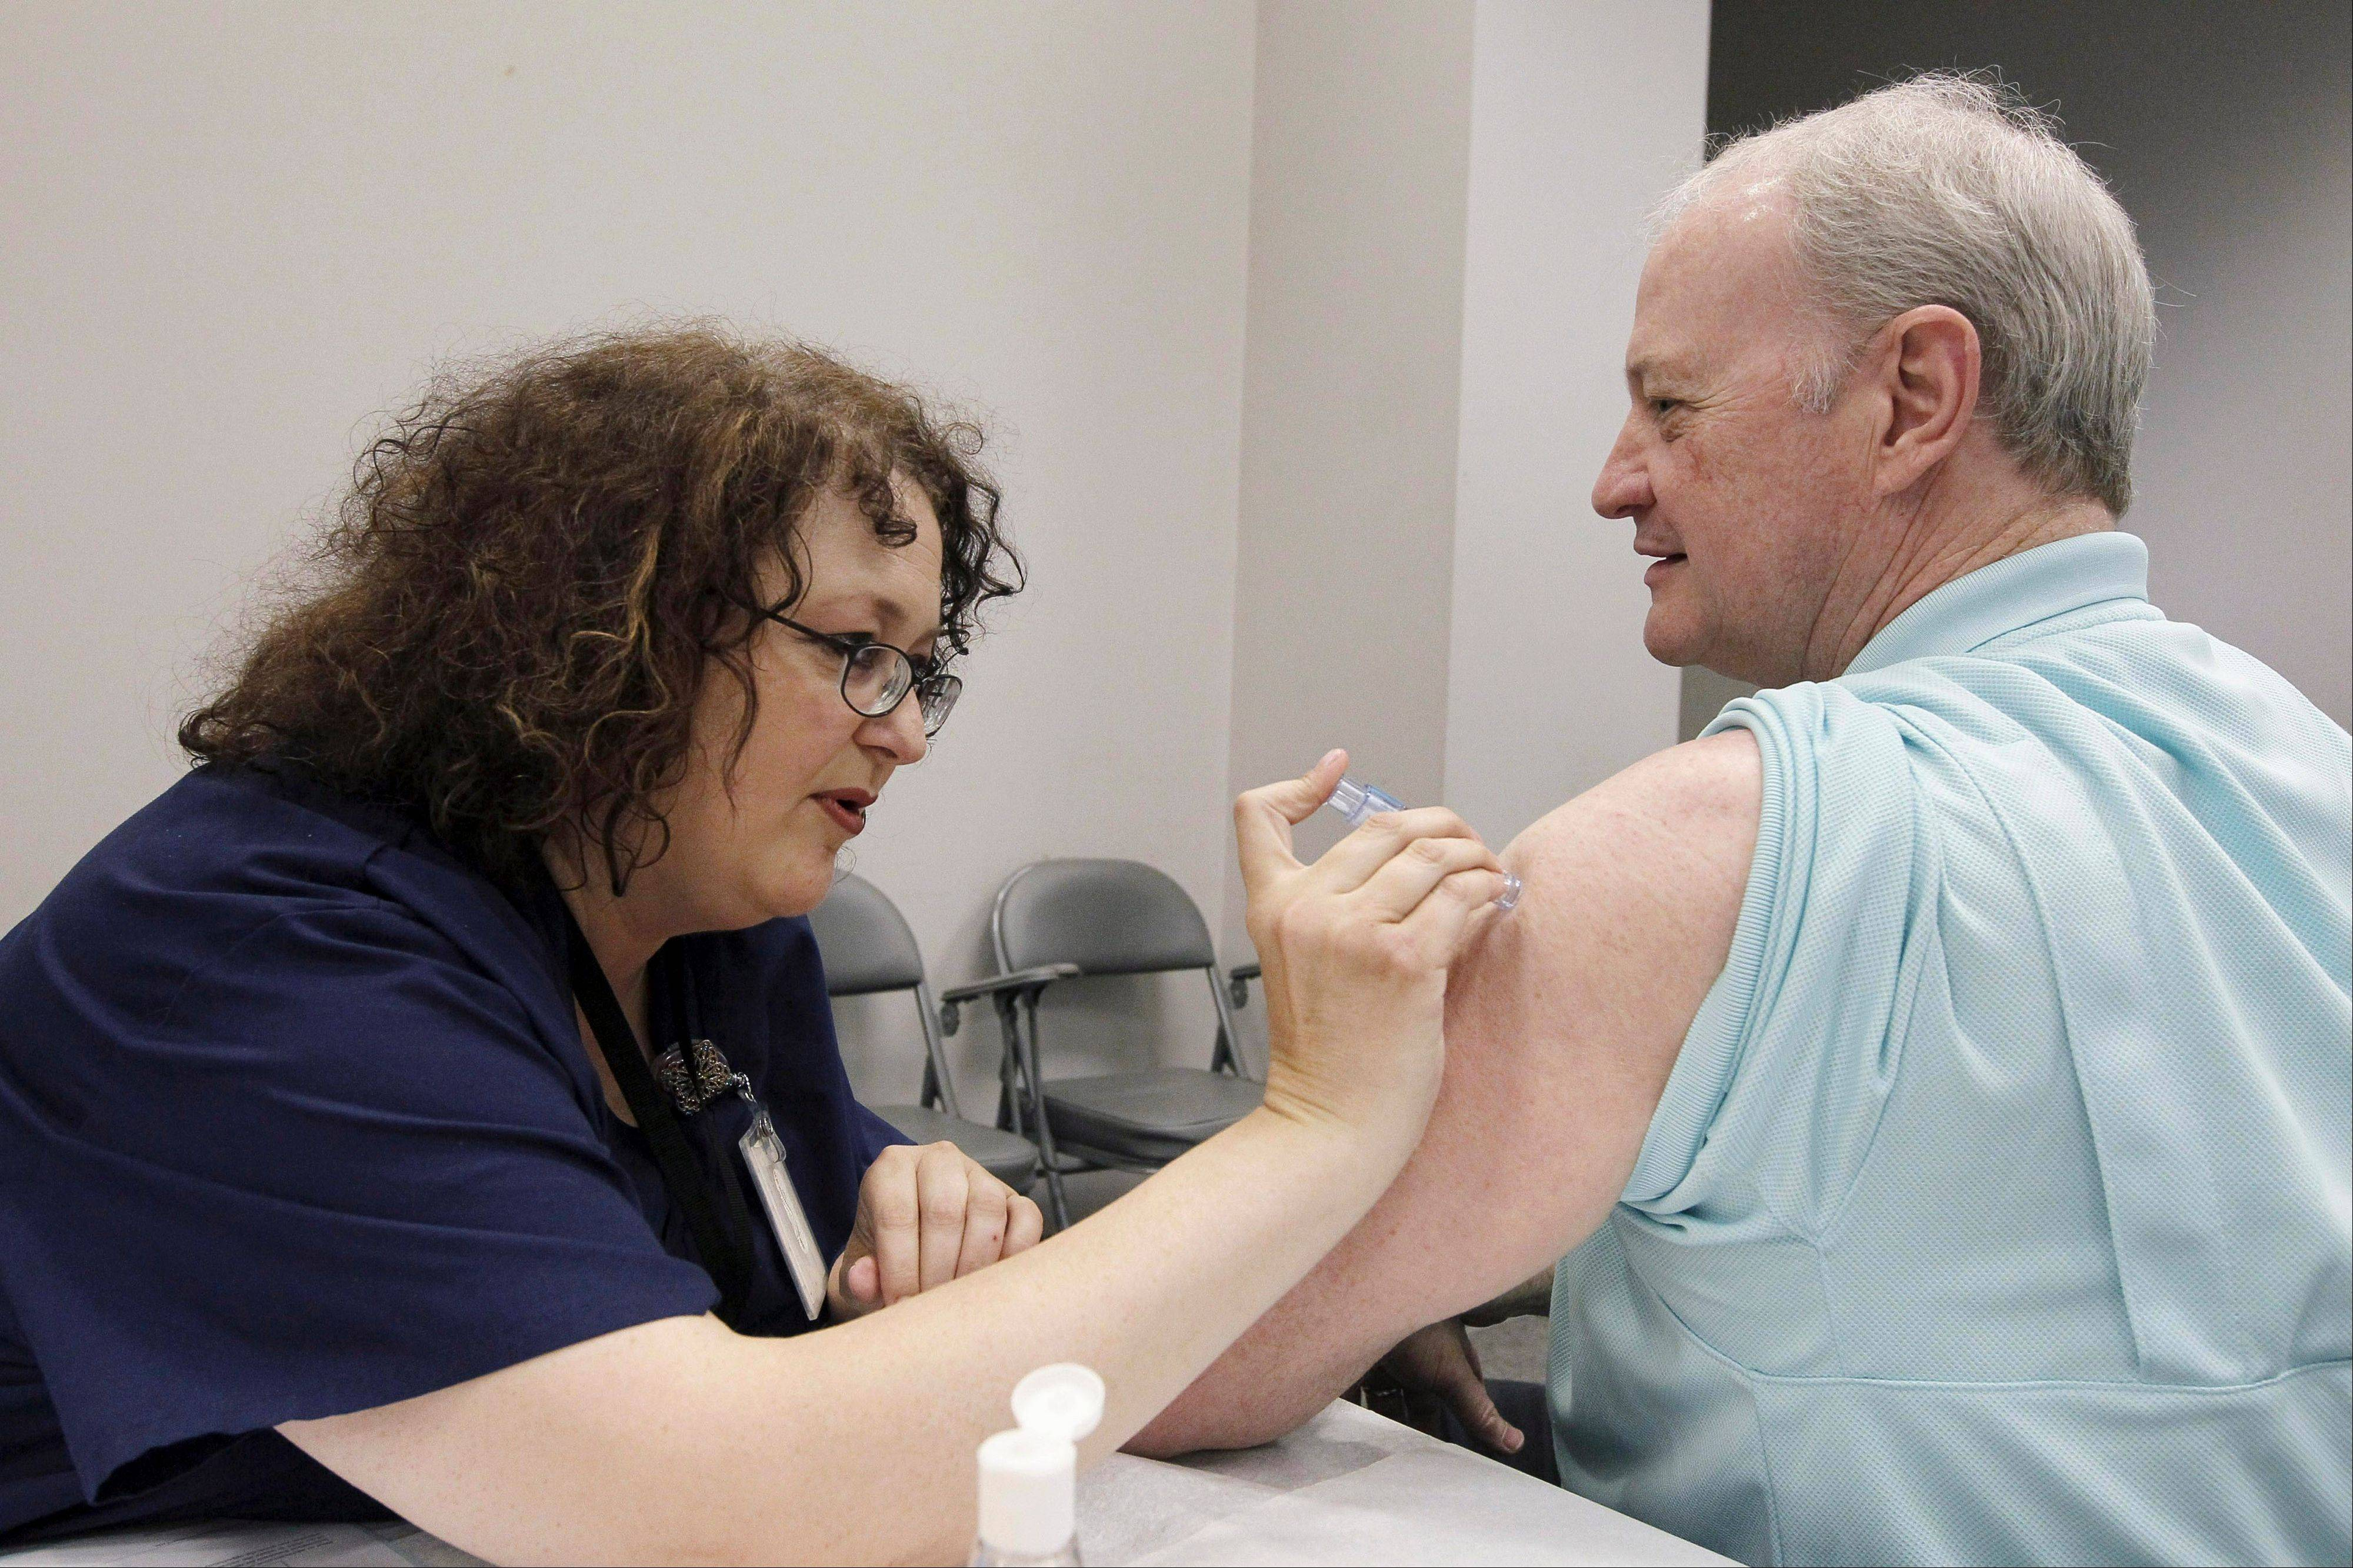 Hospitals crack down on workers refusing flu shots